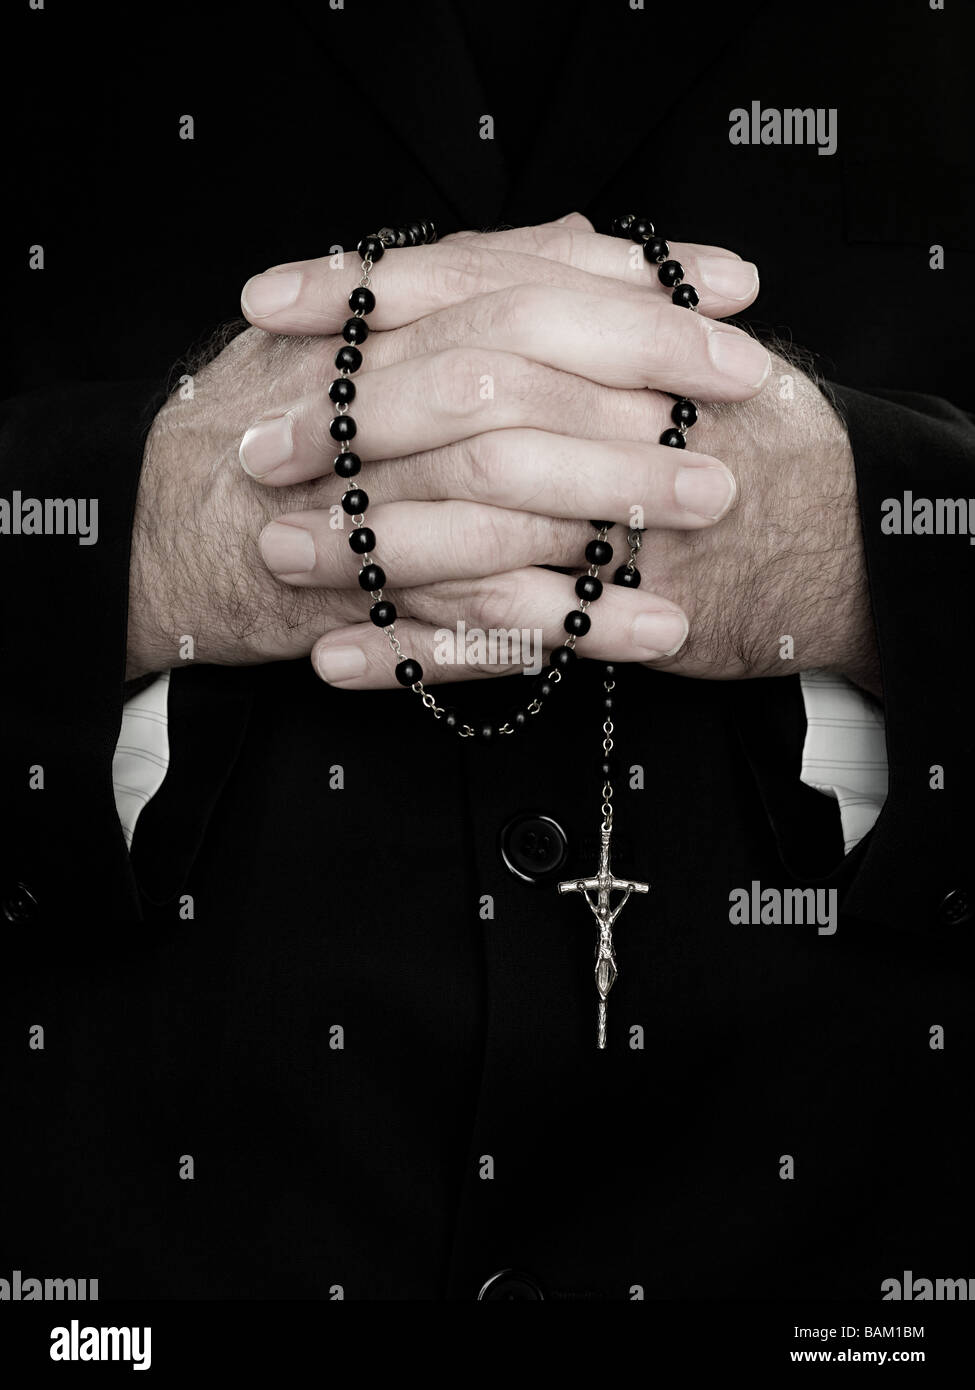 A close up of priest holding prayer beads - Stock Image